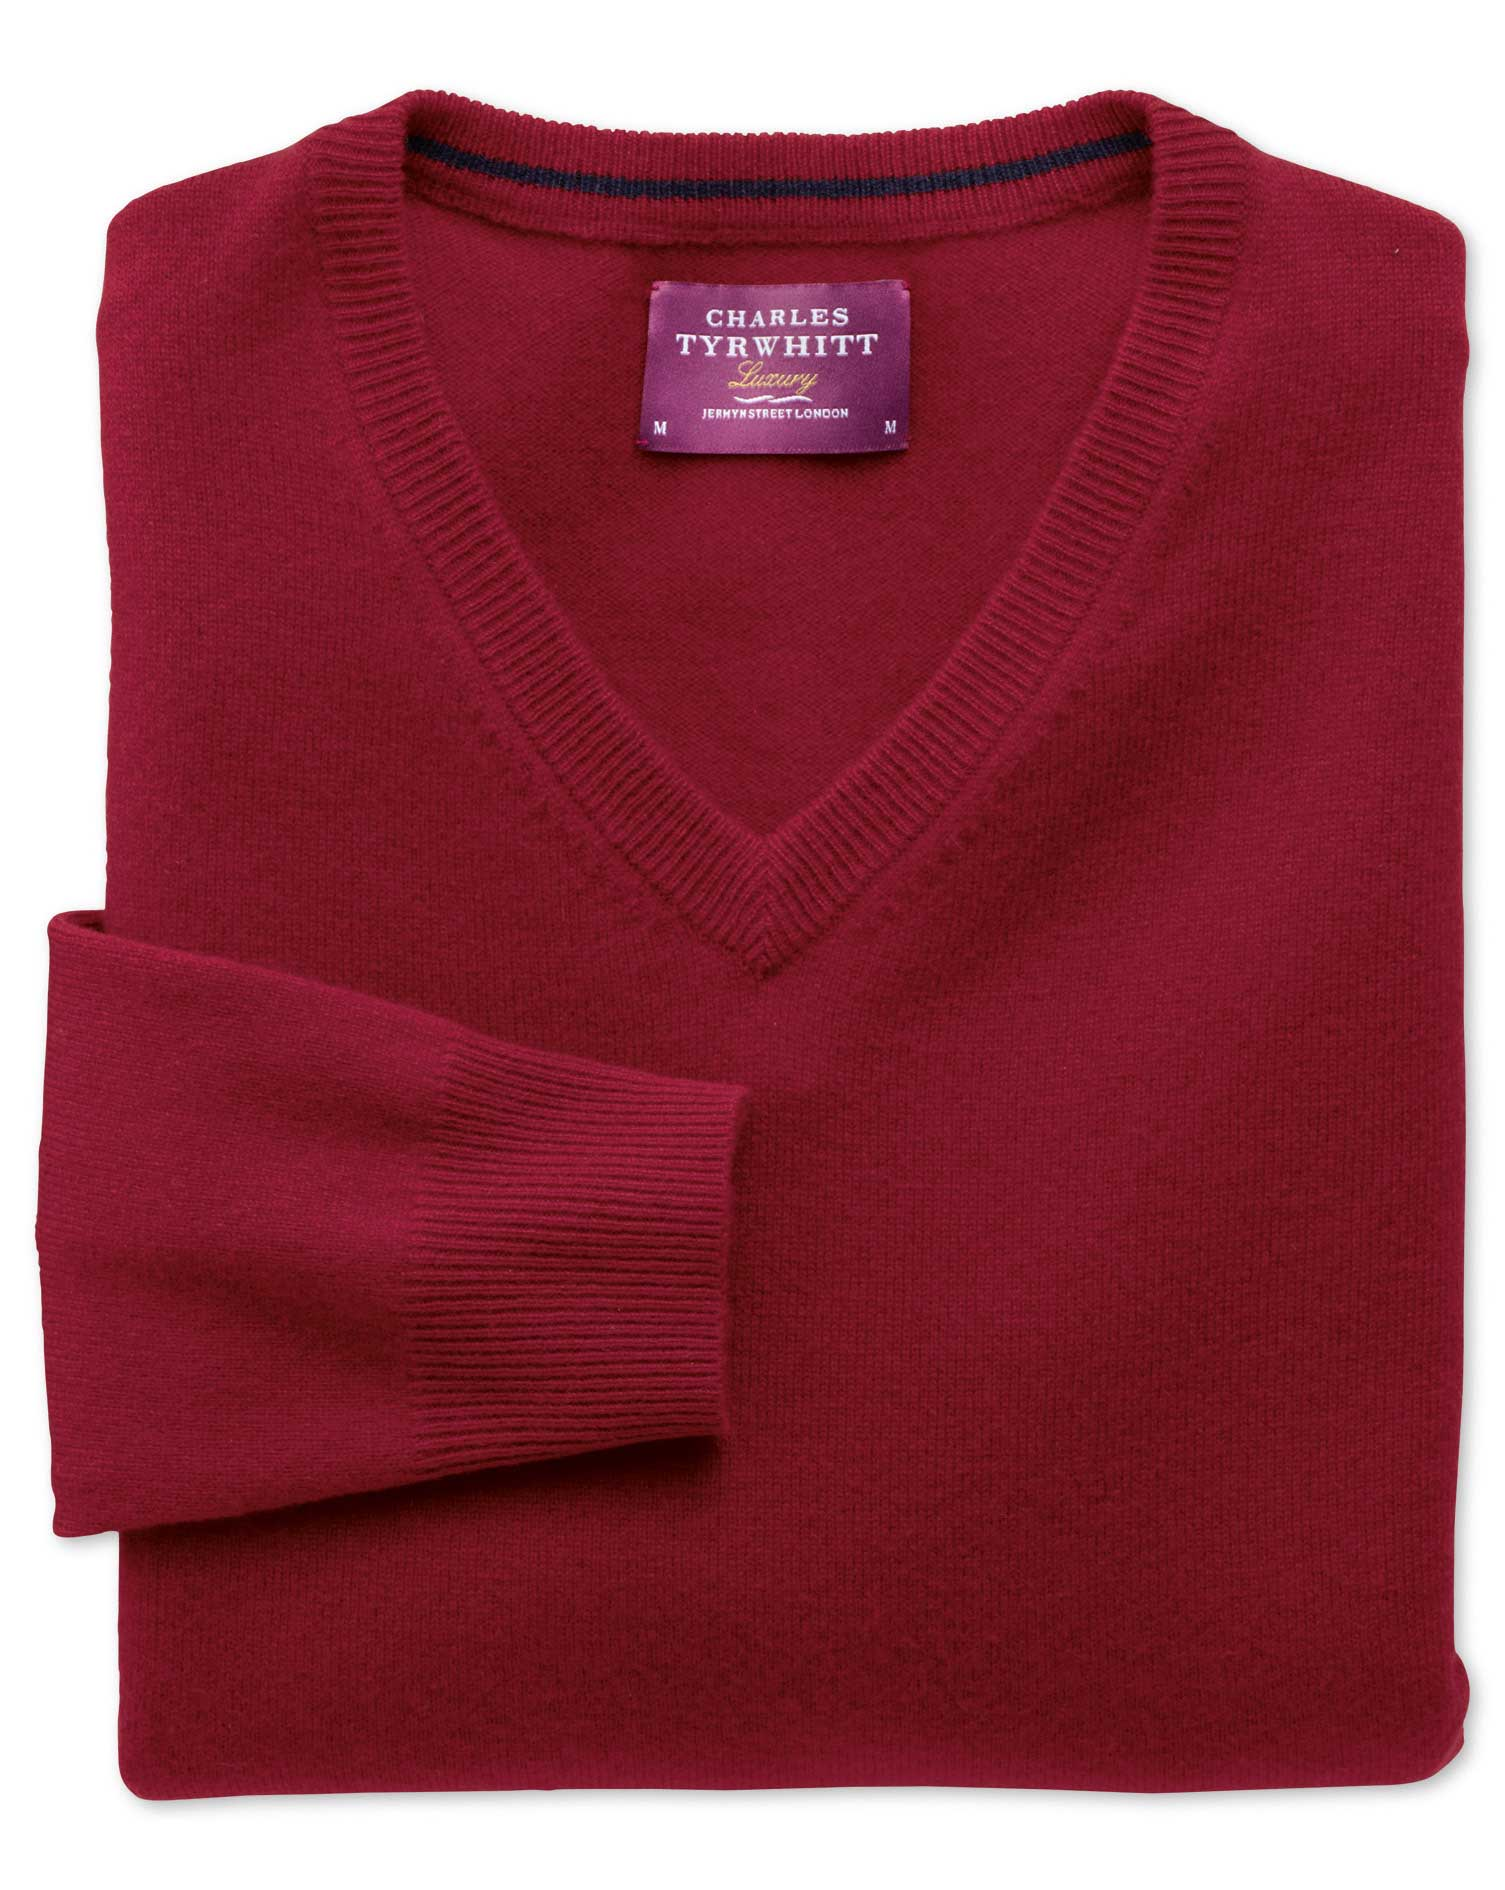 Red Cashmere V-Neck Jumper Size XL by Charles Tyrwhitt